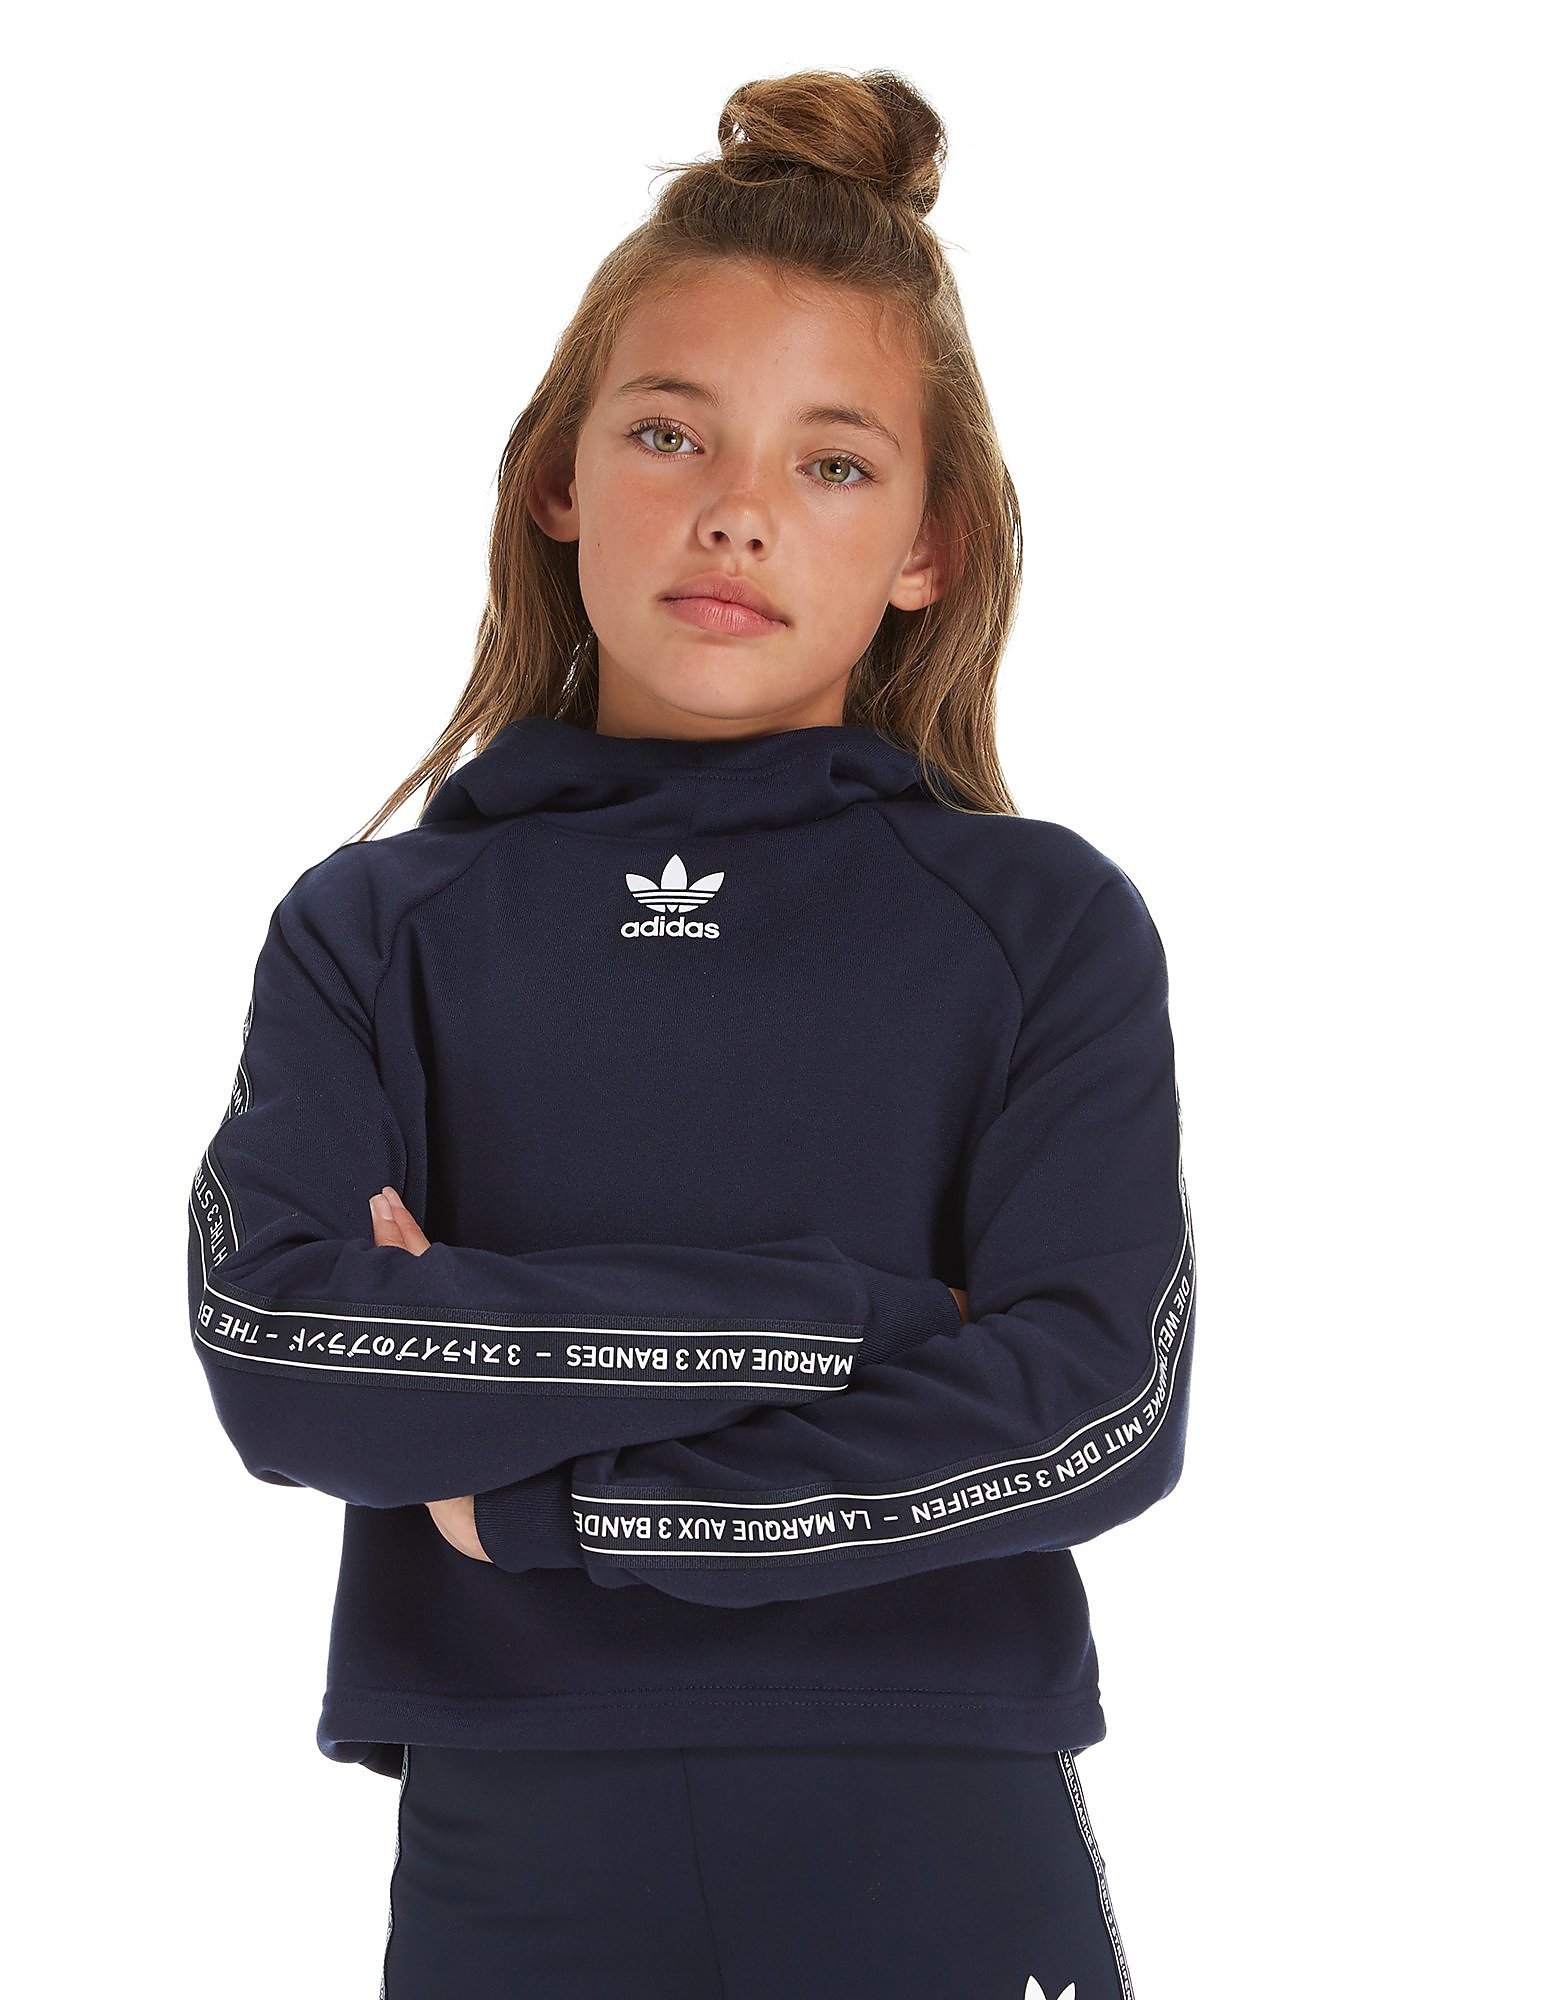 adidas Originals Girls' NMD Cropped Hoodie Junior